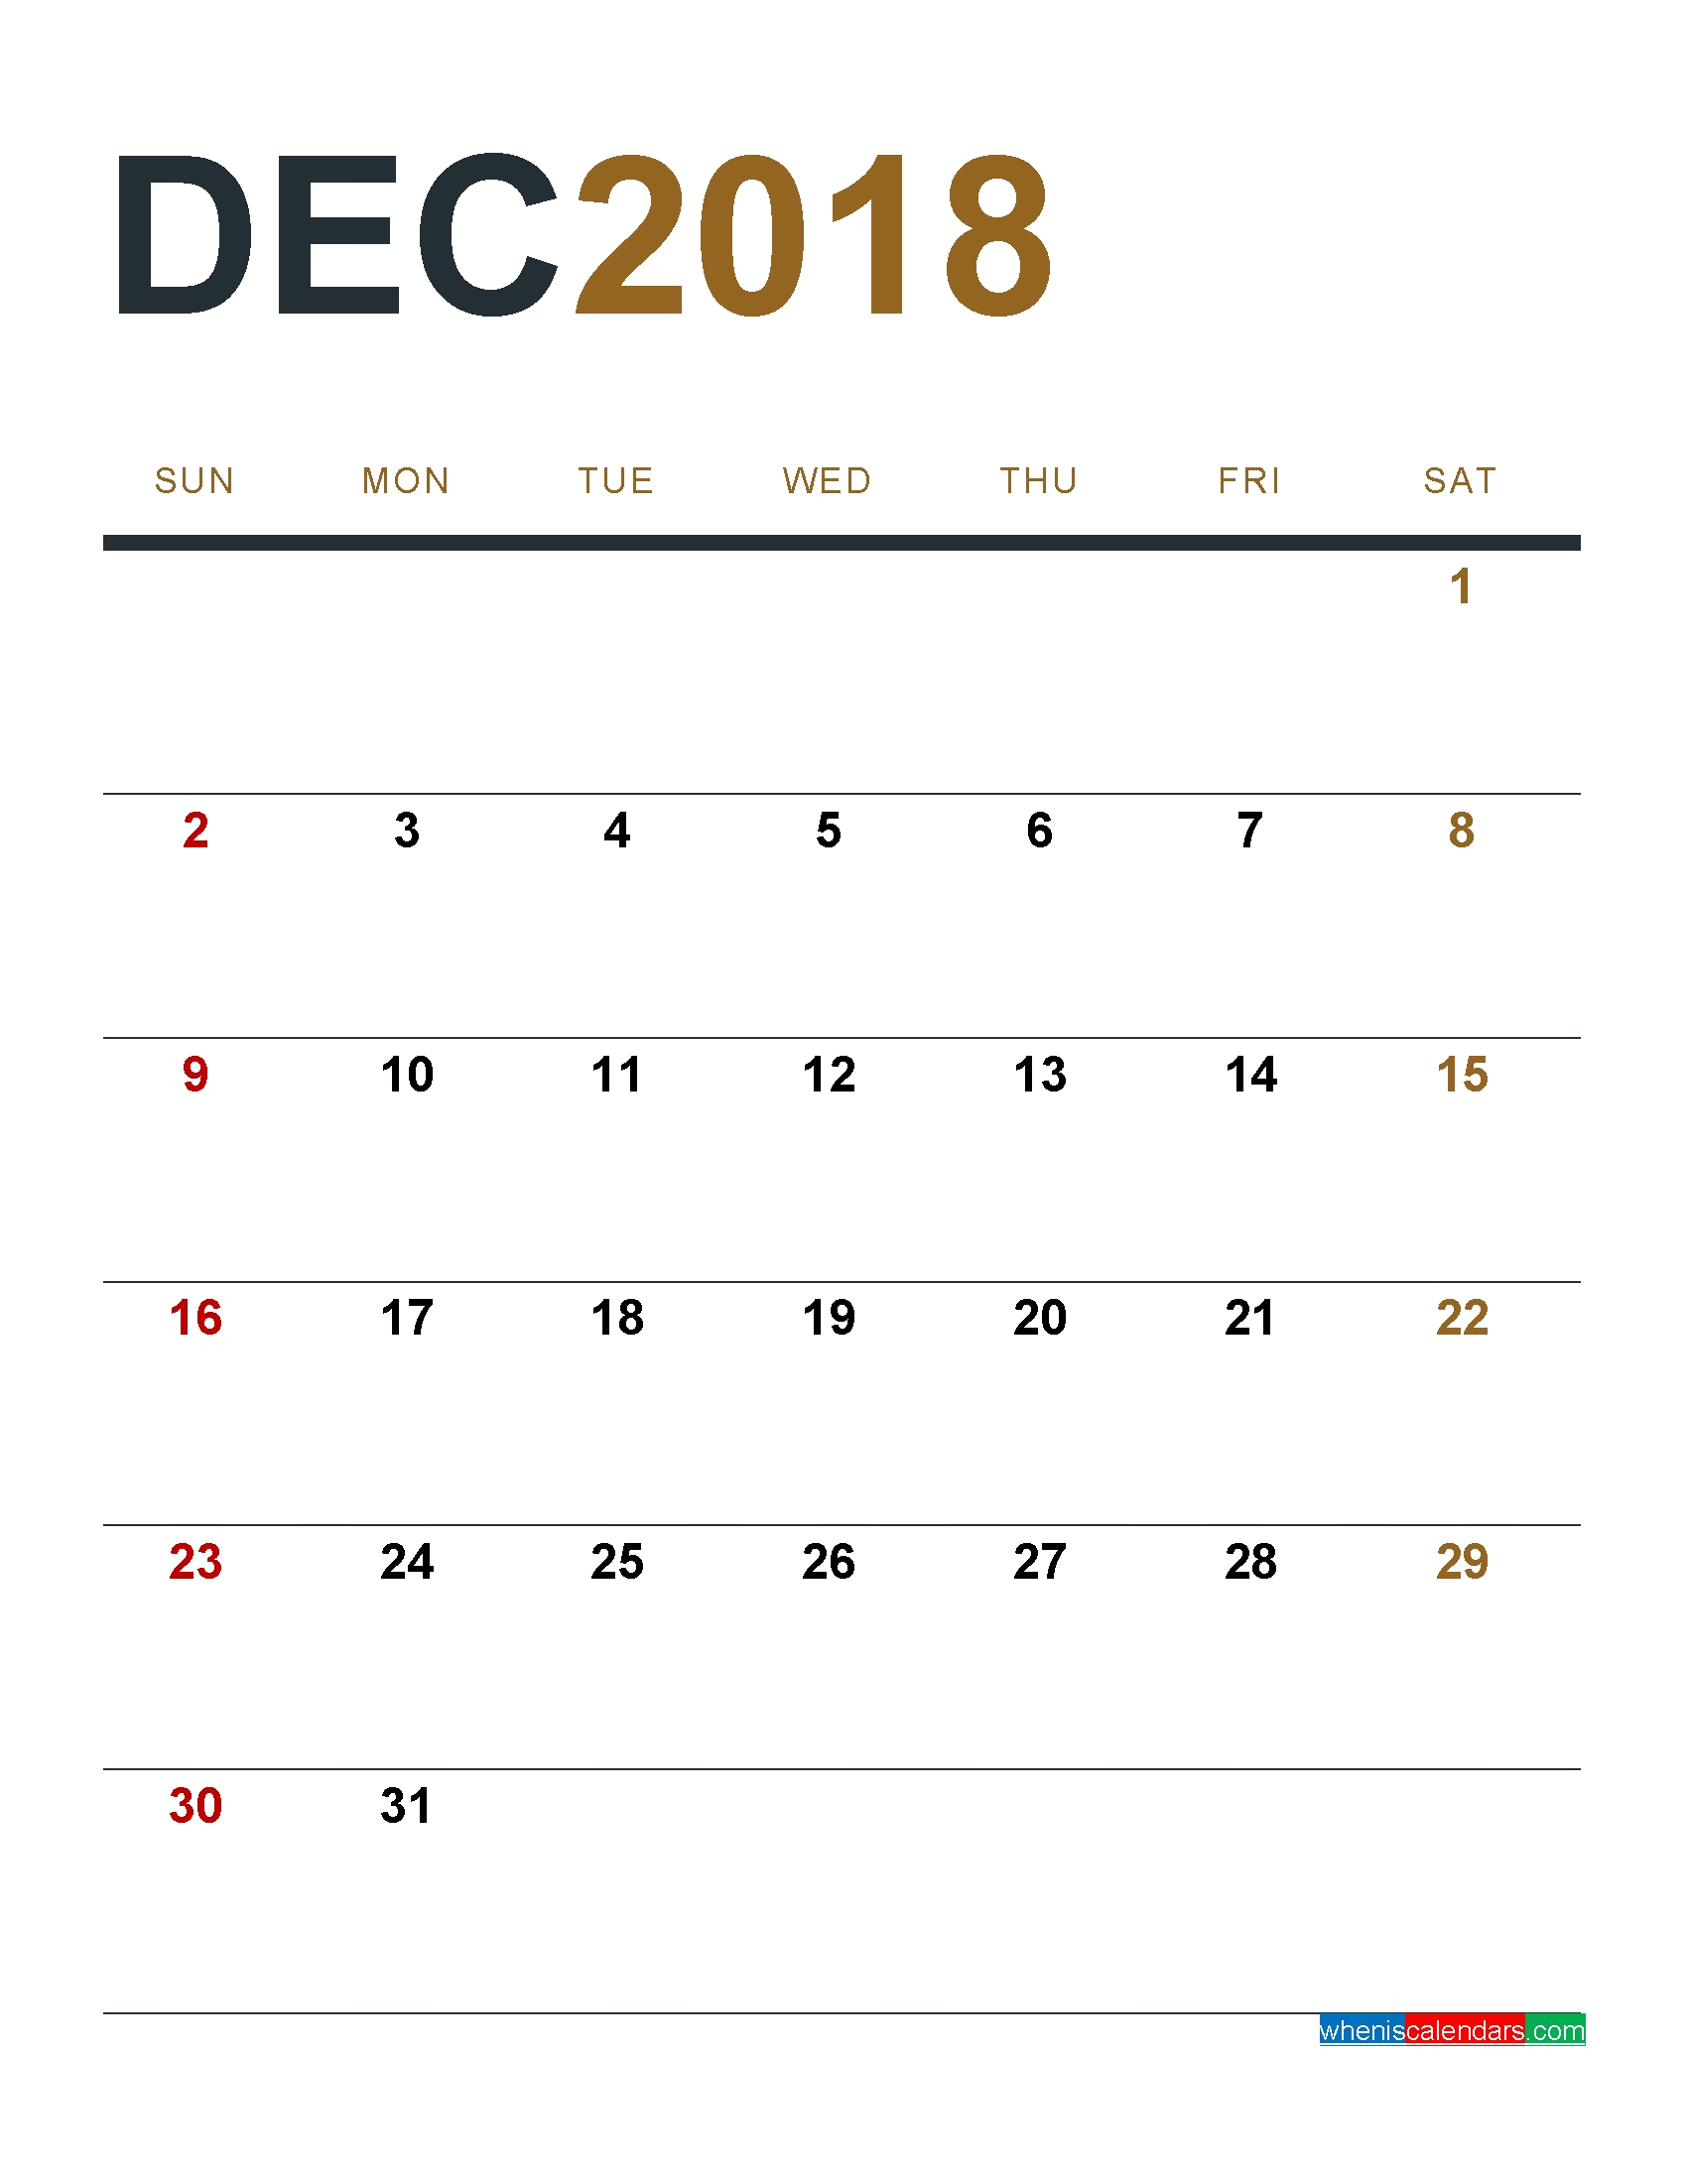 december 2018 calendar printable as pdf and image Tumblr Calendar 2018 By Month Printables erdferdf